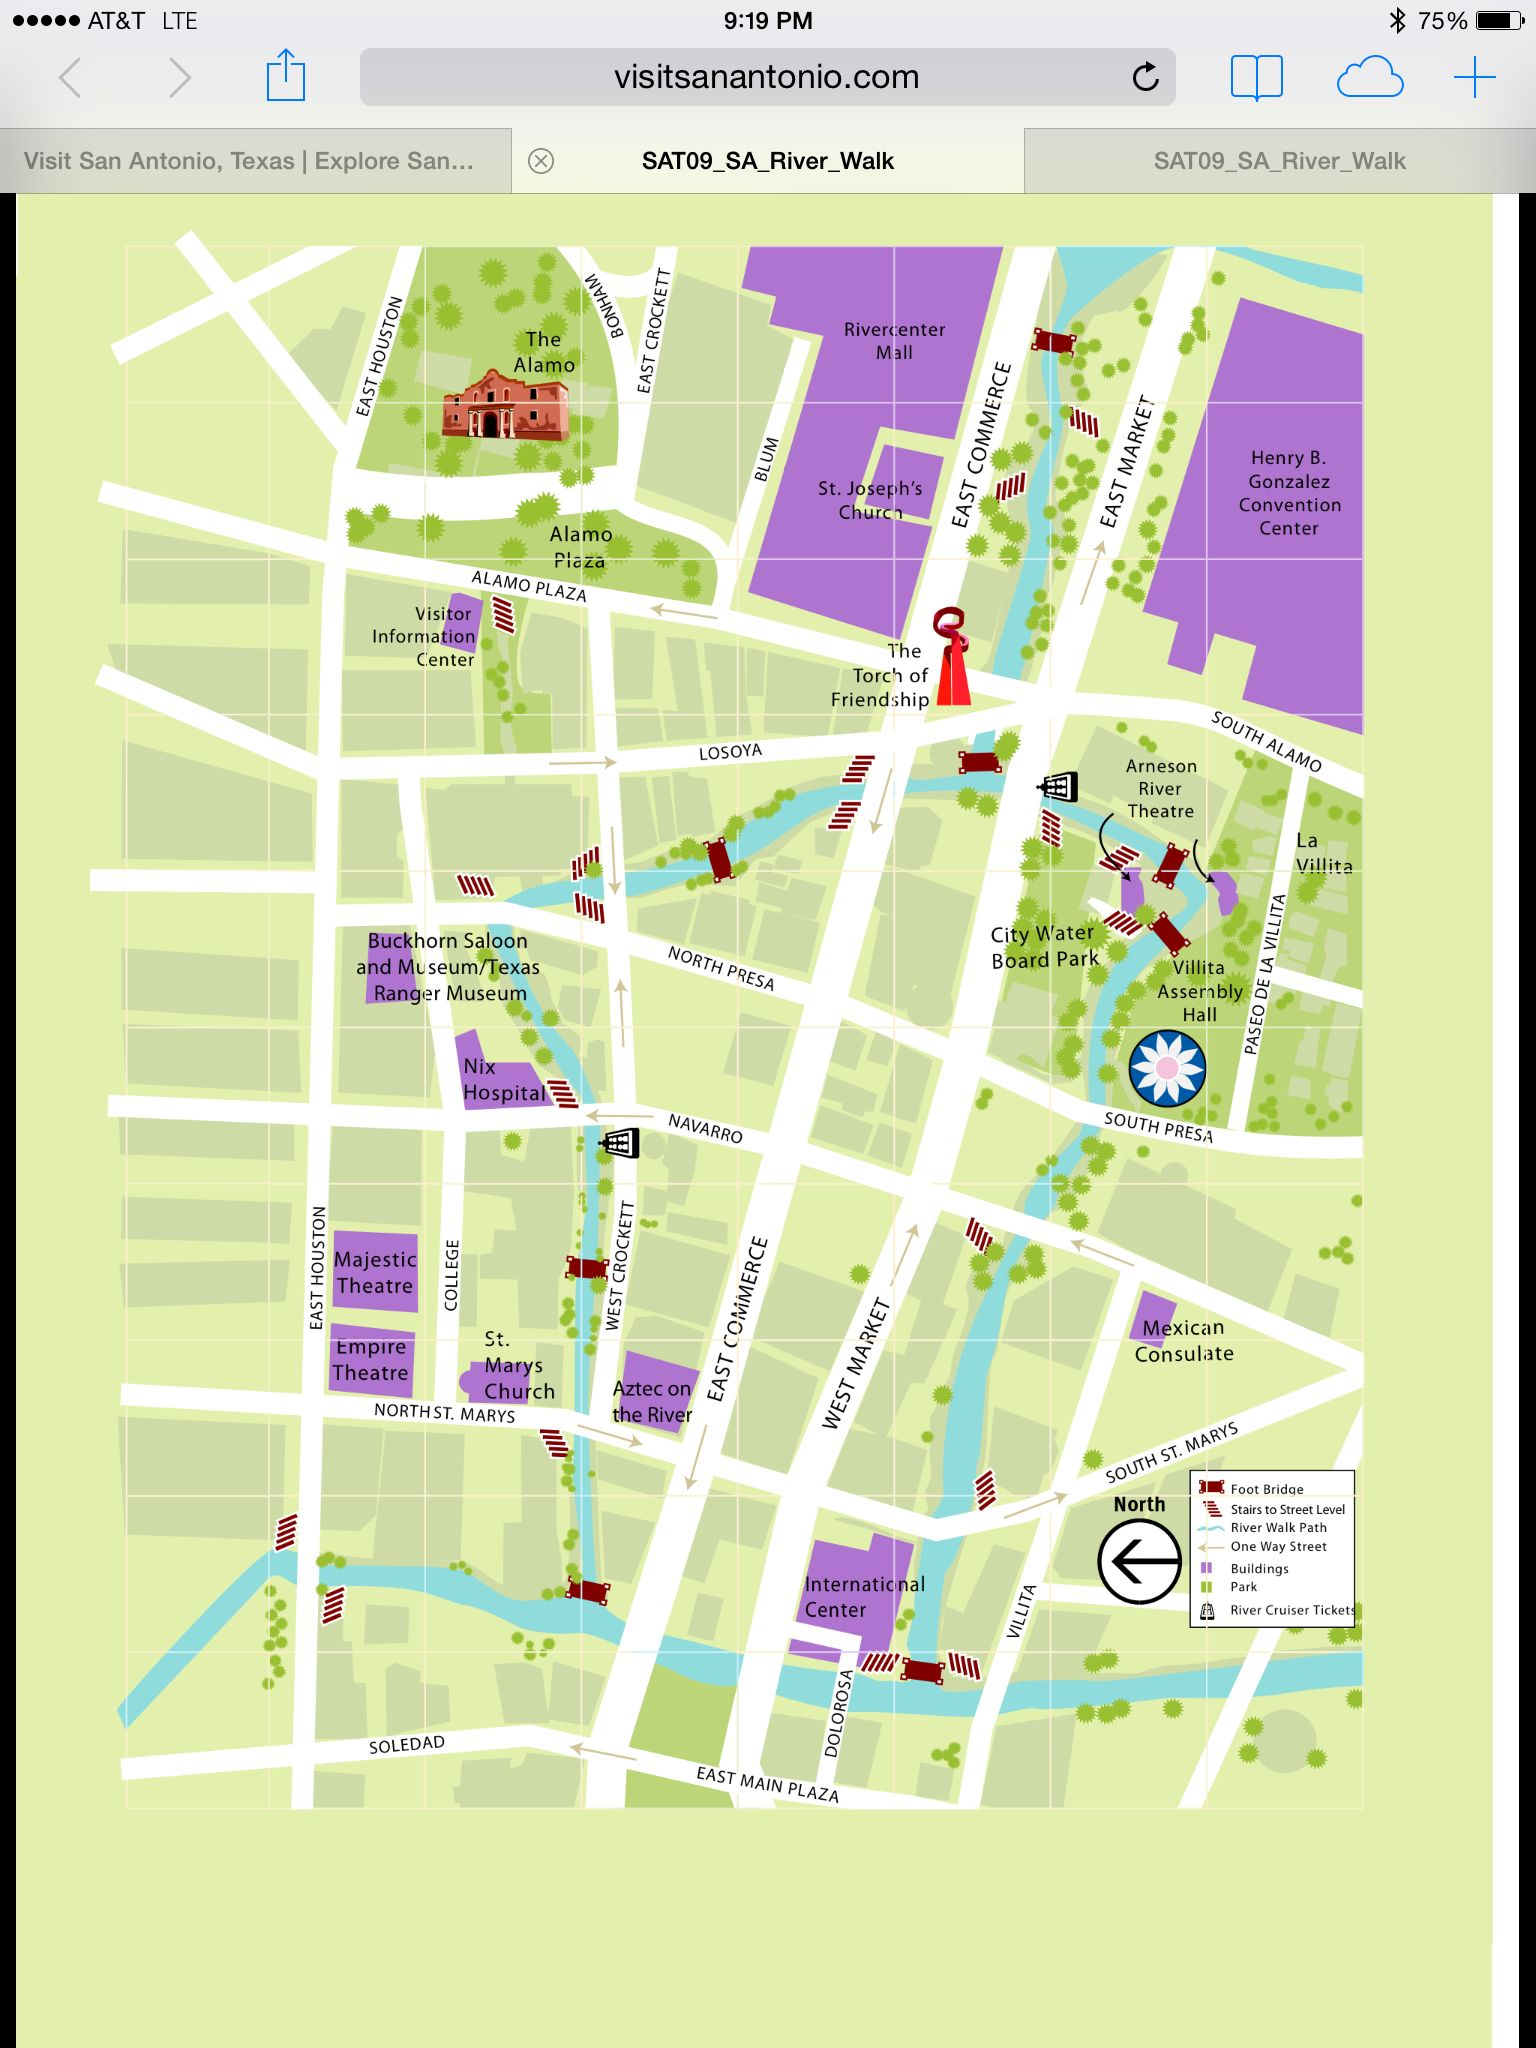 Riverwalk map in 2019 | Visit san antonio, River walk, San ... on san antonio restaurant map, san antonio downtown hotels map, phoenix convention center hotels map, city of san antonio map, houston hotels map, san antonio drury plaza hotel, san antonio medical center map, san antonio river map, san antonio parking map, grand hyatt san antonio map, corpus christi hotels map, alamo san antonio map, san antonio airport map, san antonio visitors map, colorado hotels map, port aransas hotels map, alamodome san antonio map, san antonio tx at night, san antonio riverwalk extension map, san antonio bay aerial map,